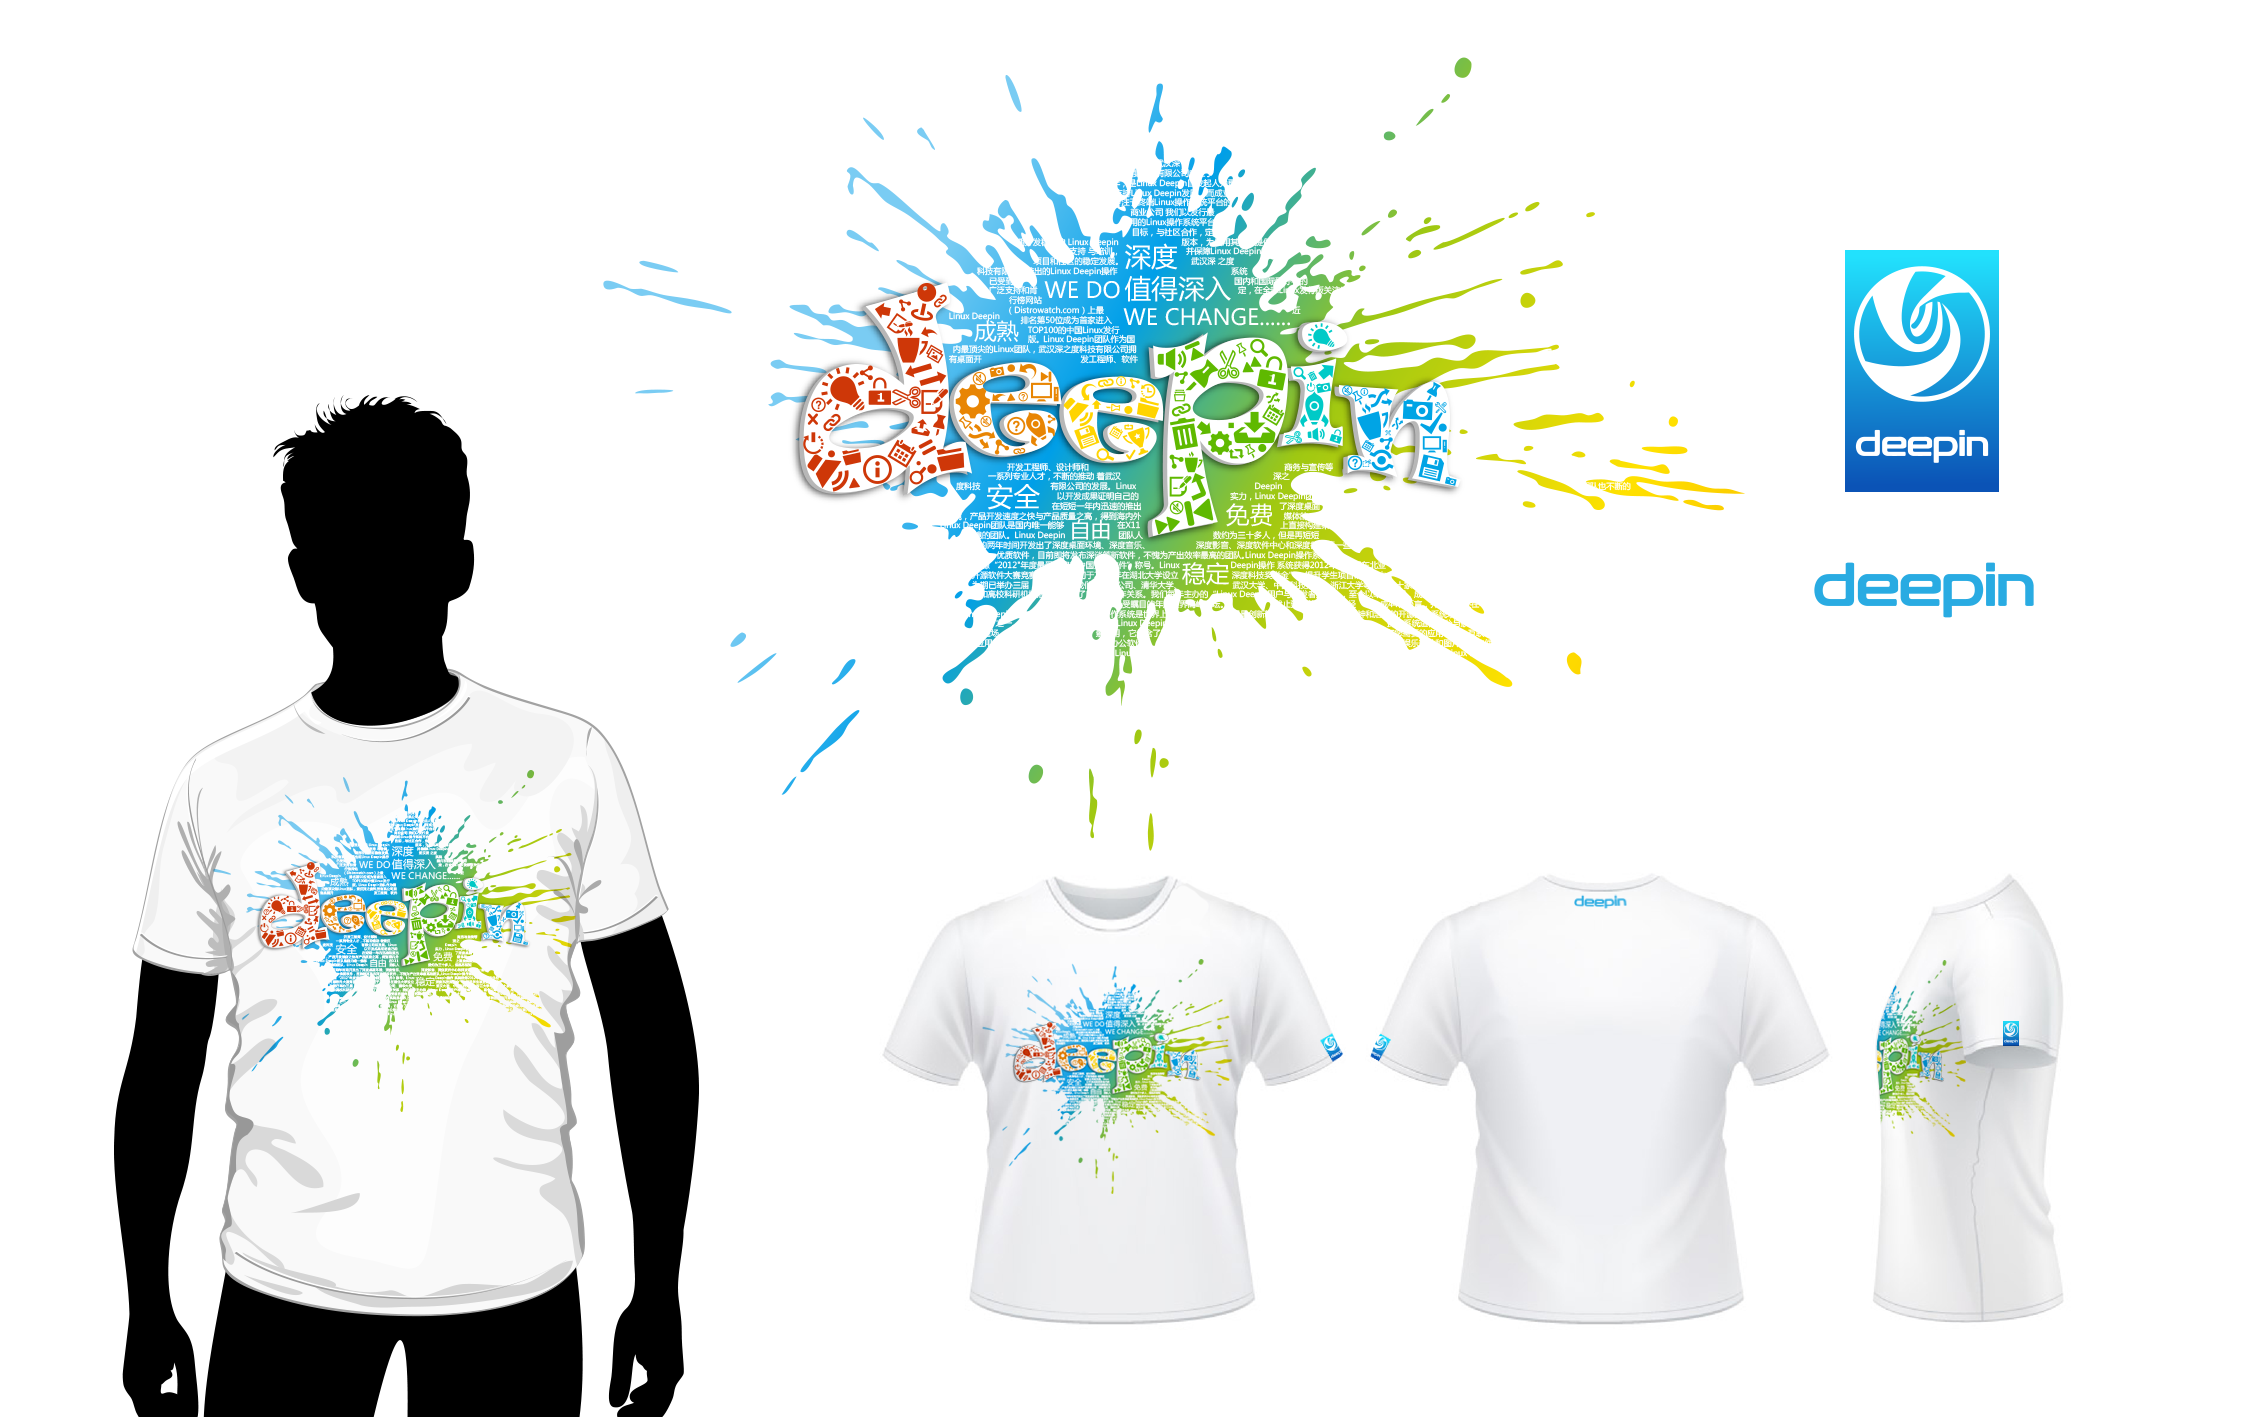 Deepin official T-shirt and sticker pattern